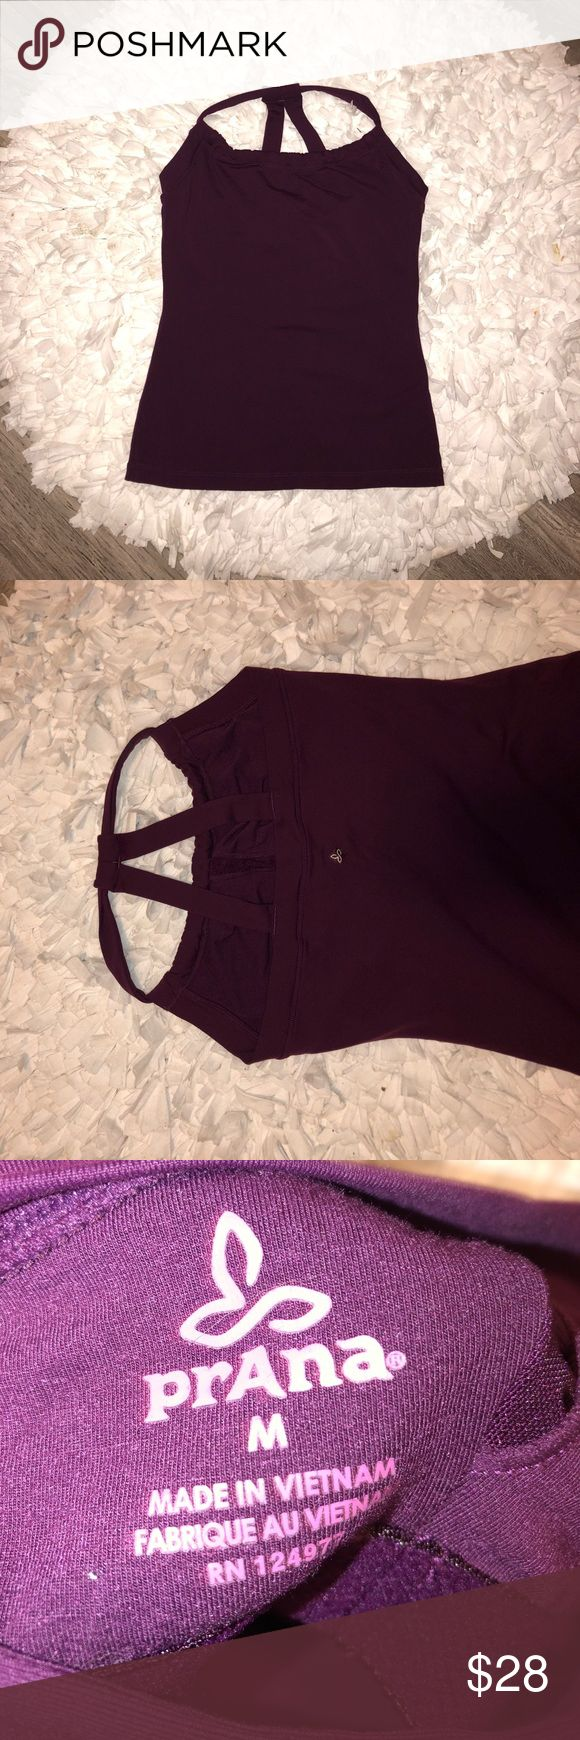 [prAna] Purple Athletic Tank With Built in Bra Deep purple strappy tank top by prAna. Built in bra and super soft material. Size medium Prana Tops Tank Tops